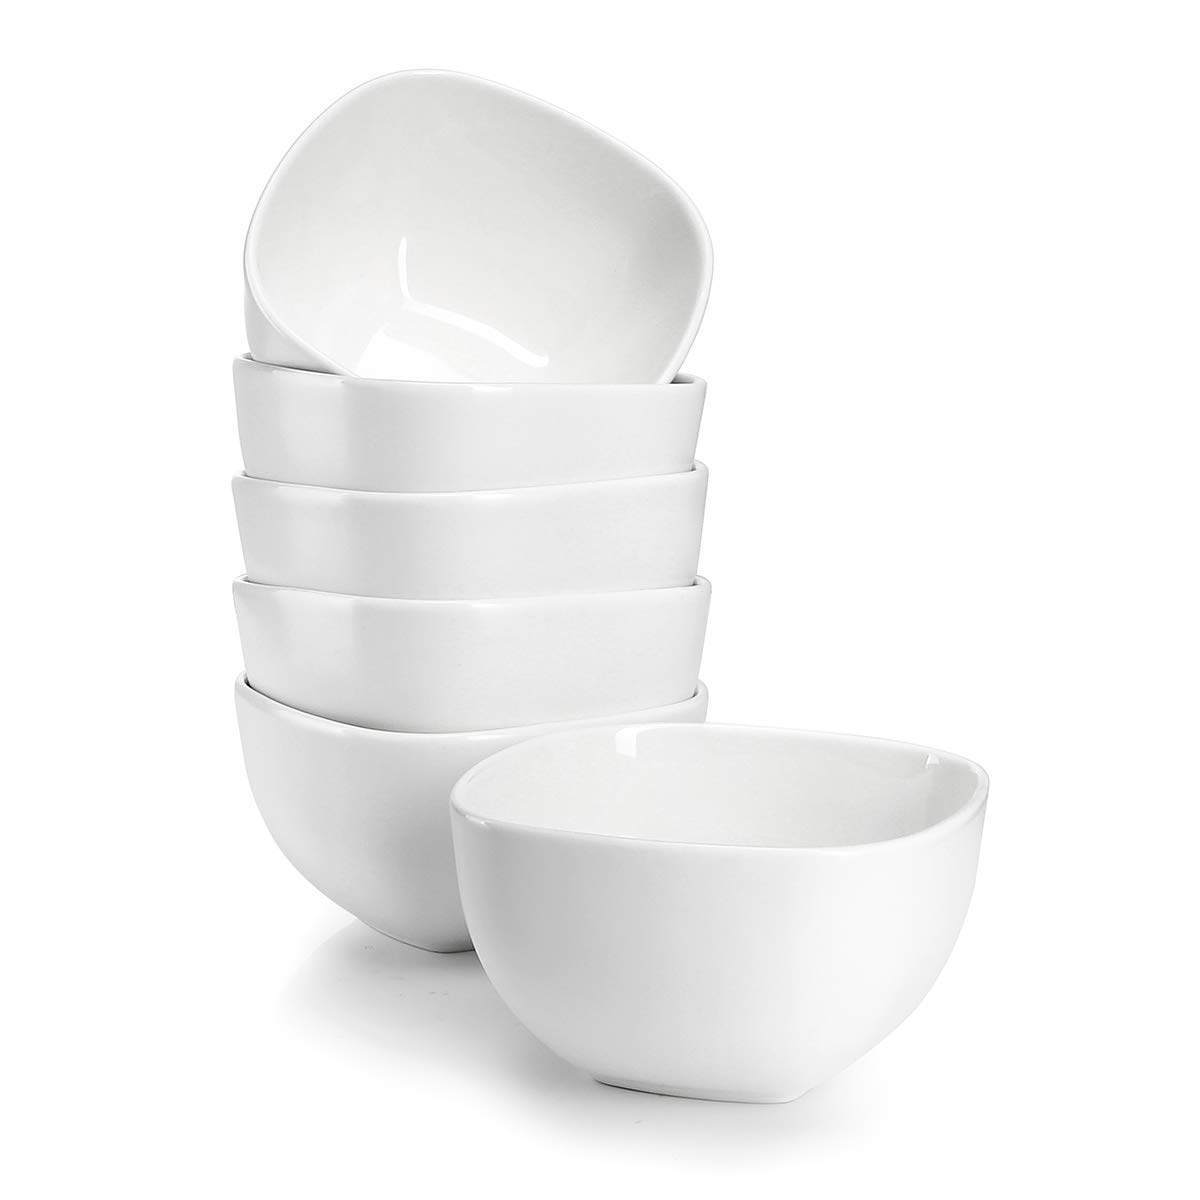 Sweese 1303 Porcelain Square Bowl Set - 14 Ounce for Cereal, Soup and Fruit - Set of 6, White